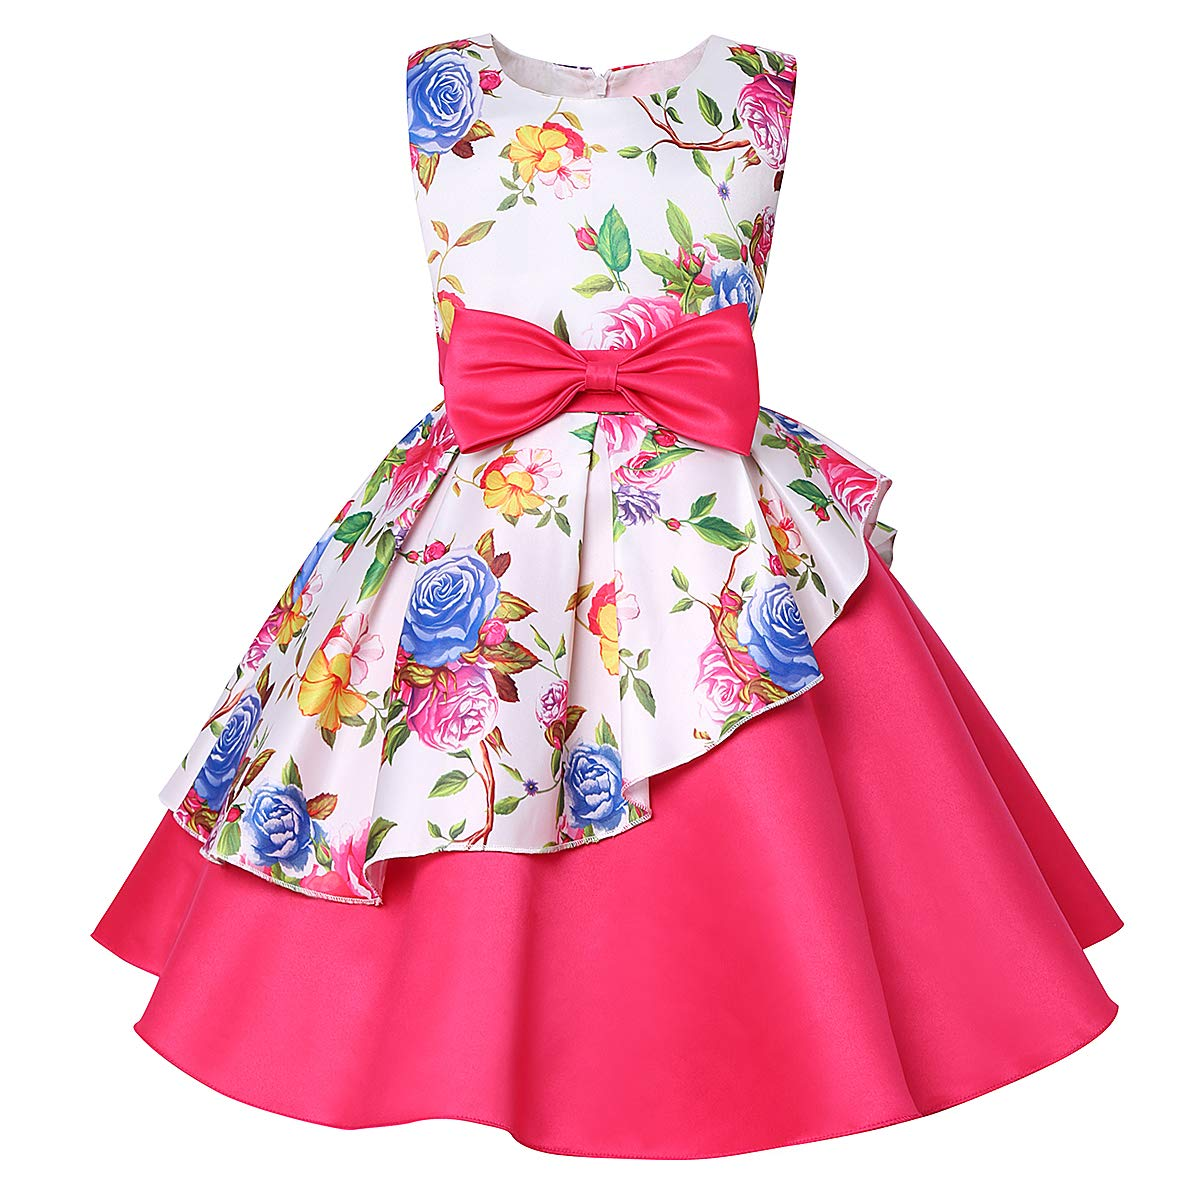 1e6c6eb6b Galleon - ZaH Girls Summer Dress Sleeveless Printing Casual/Party Size 4  Fashion Dresses For Toddler Girls Children Special Occasion Dresses  3-4(Fushia,4)